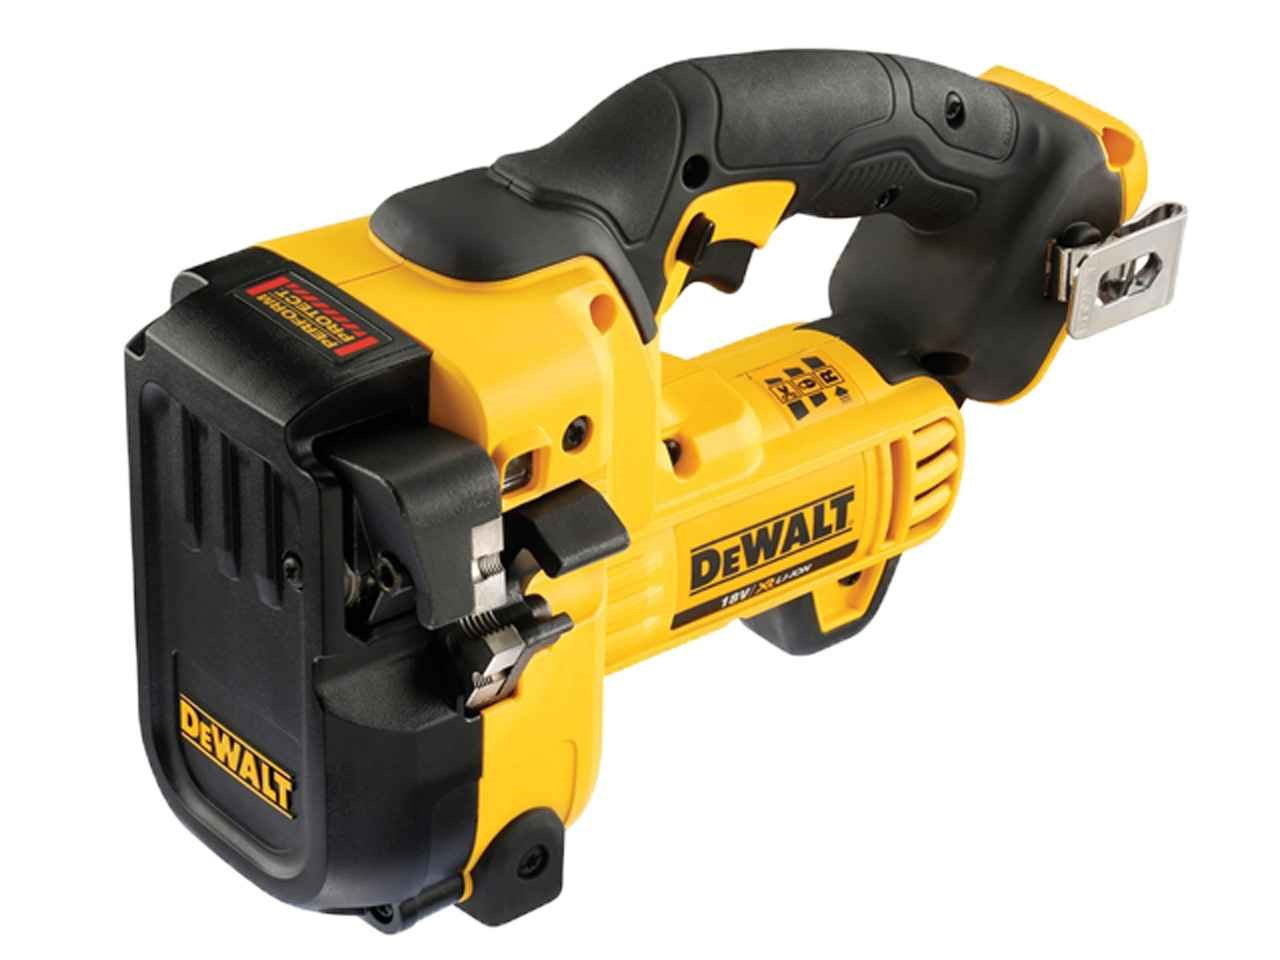 dewalt dcs350n 18v xr threaded rod rebar cutter bare unit. Black Bedroom Furniture Sets. Home Design Ideas